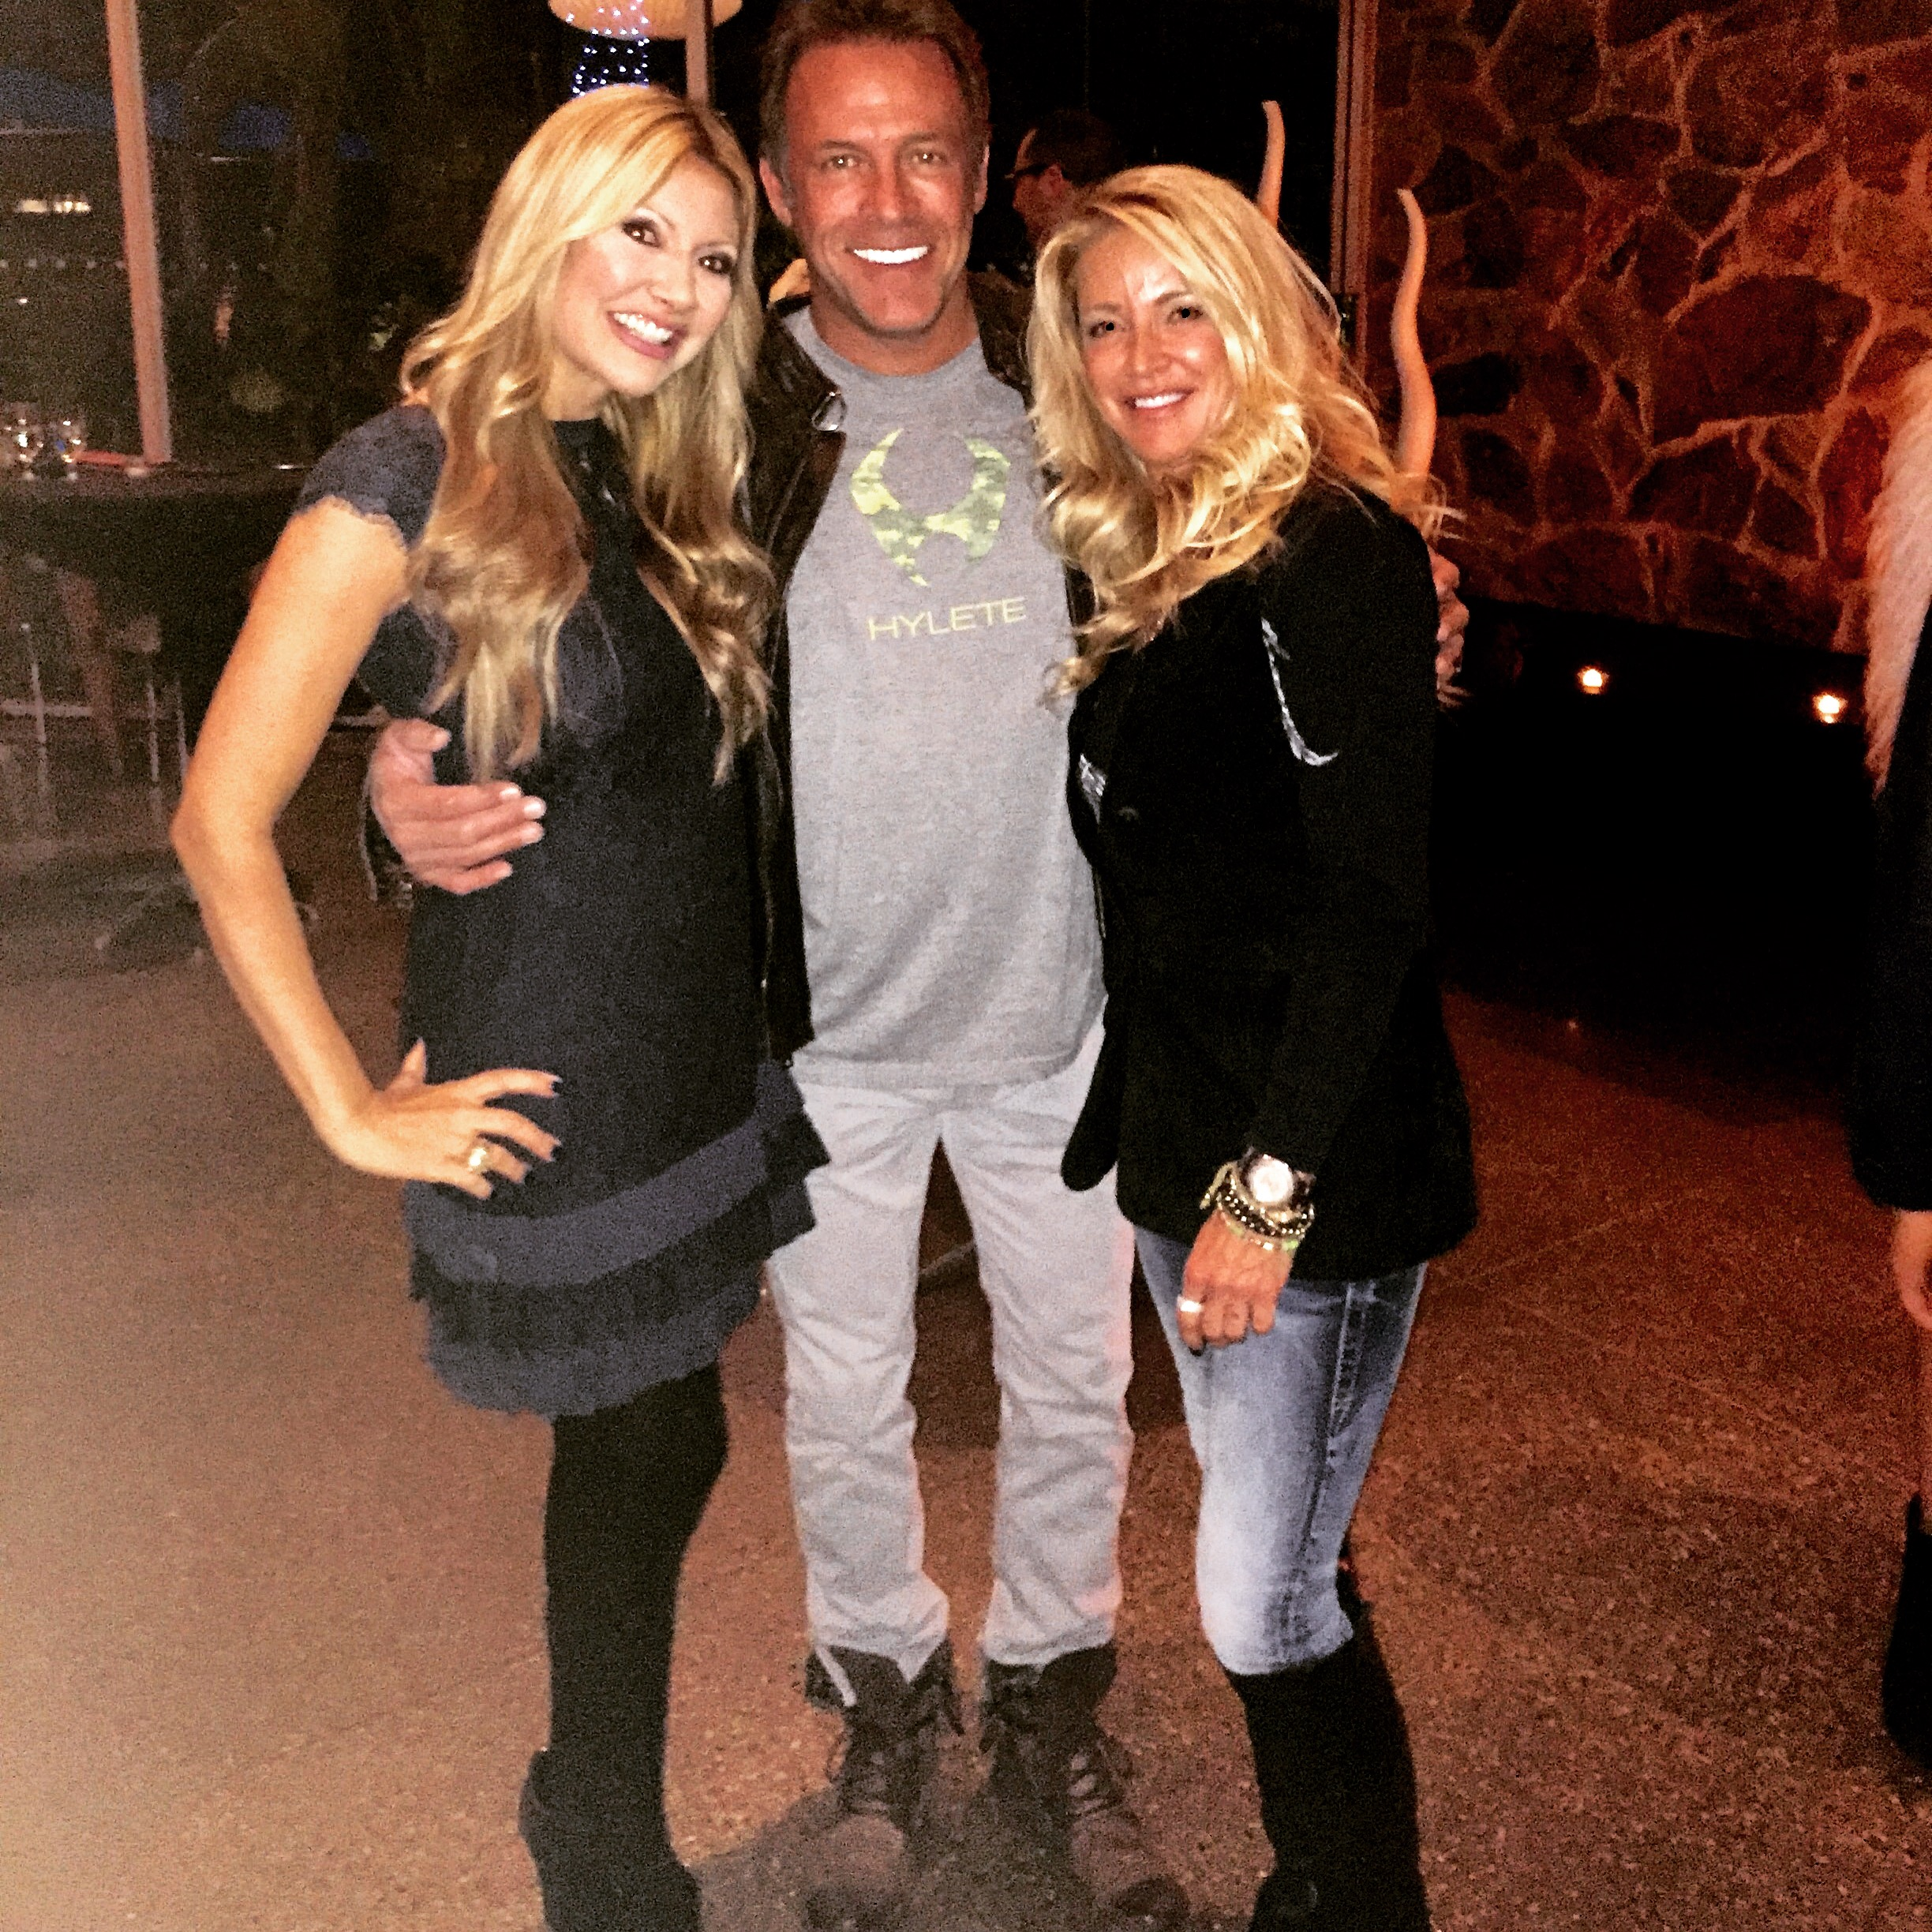 Carey Pena & 3TV's Scott Pasmore at The Hotel Valley Ho in Phoenix